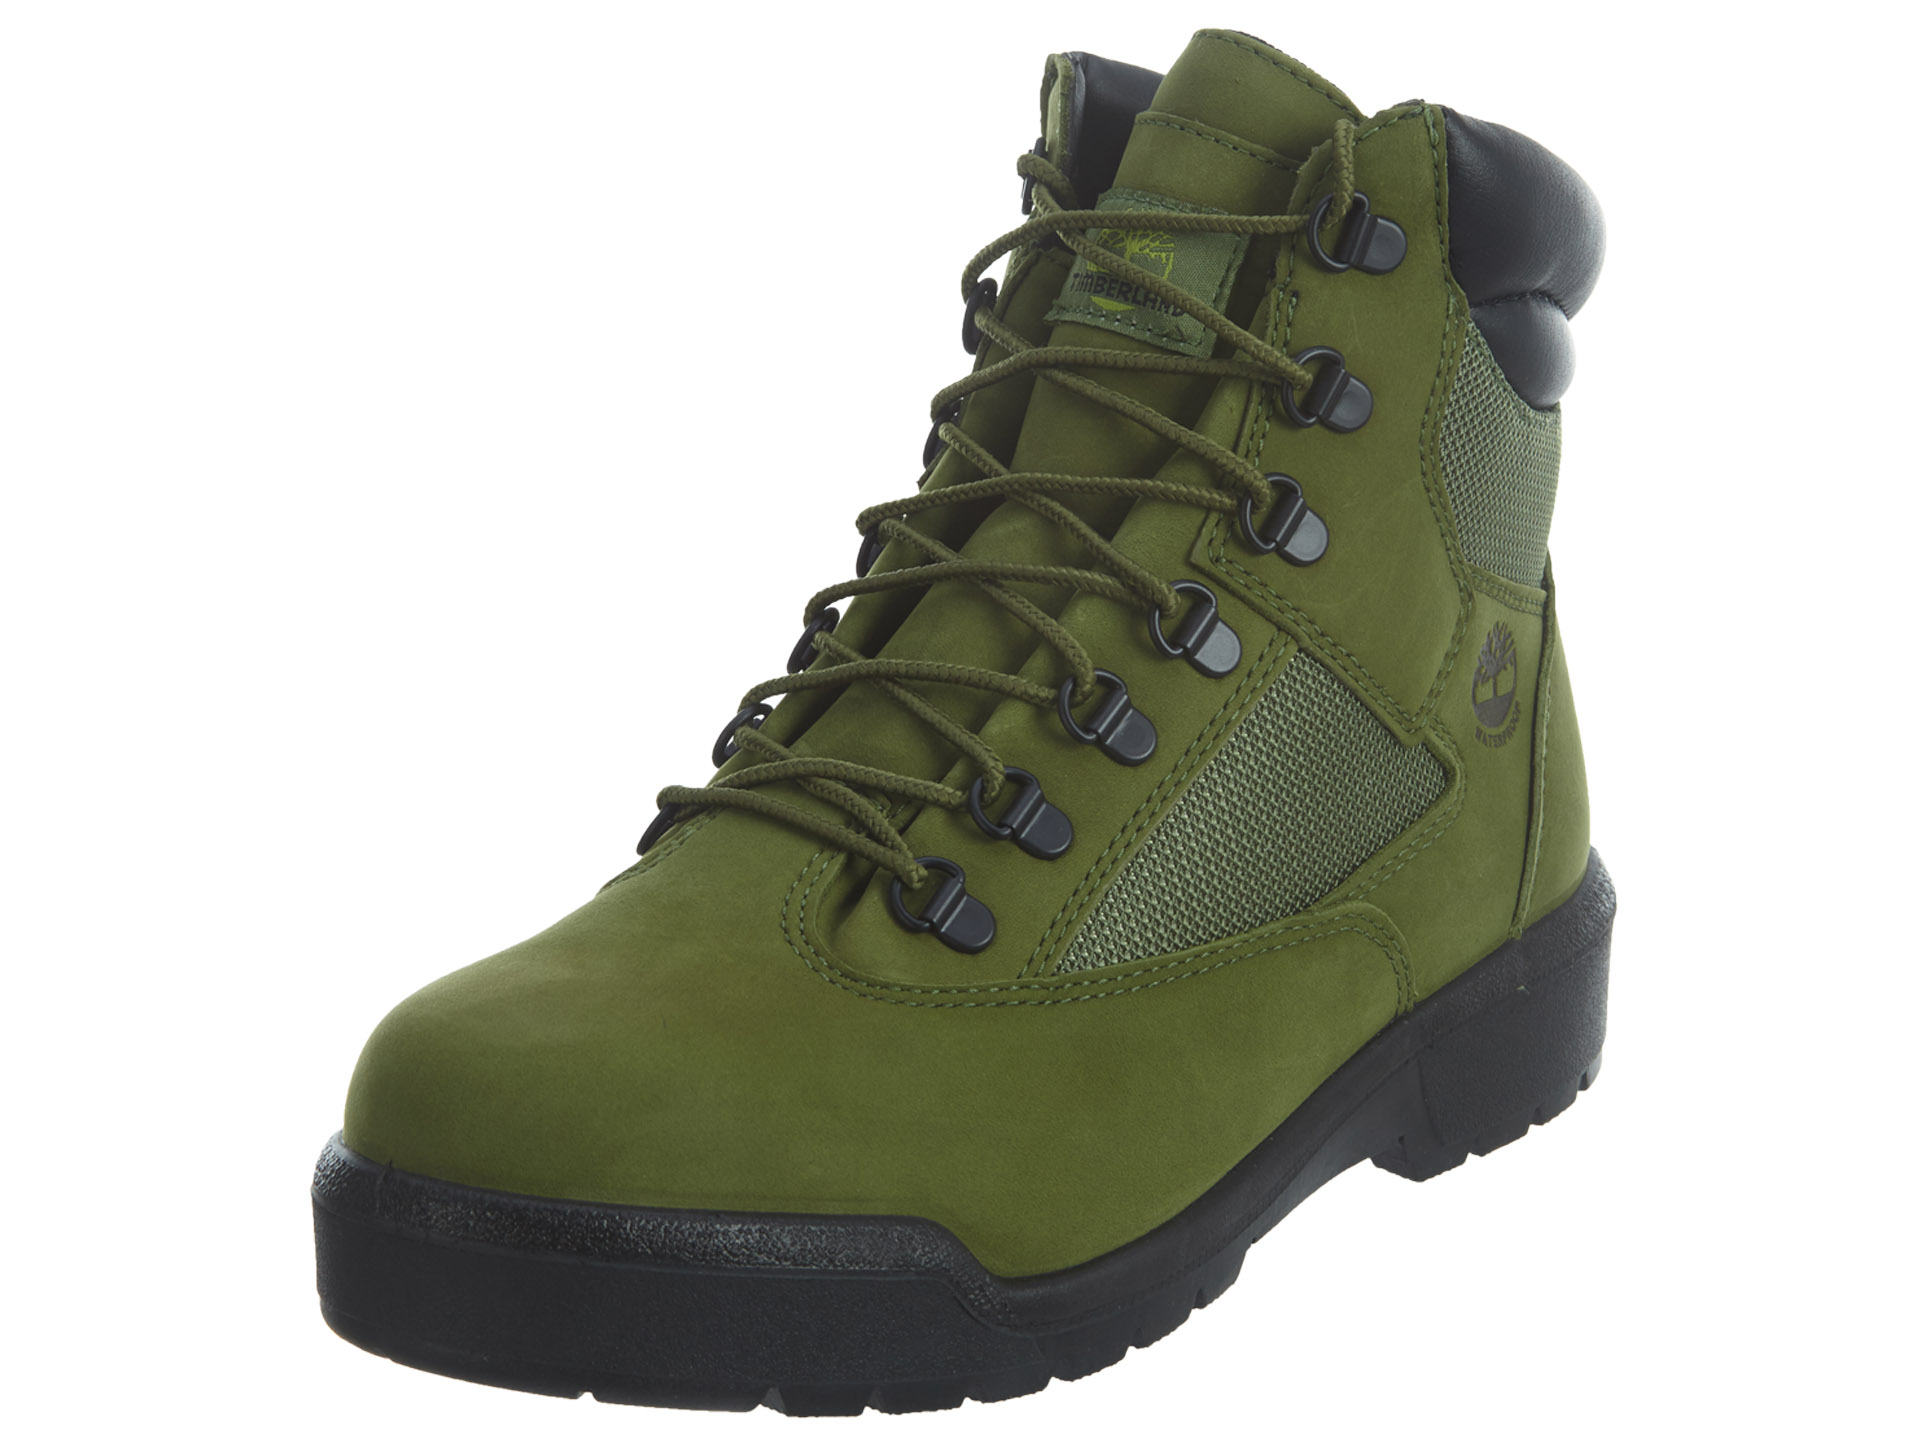 "Timberland 6 Field Boots Mens Style : Tb0a1jf5"" by"